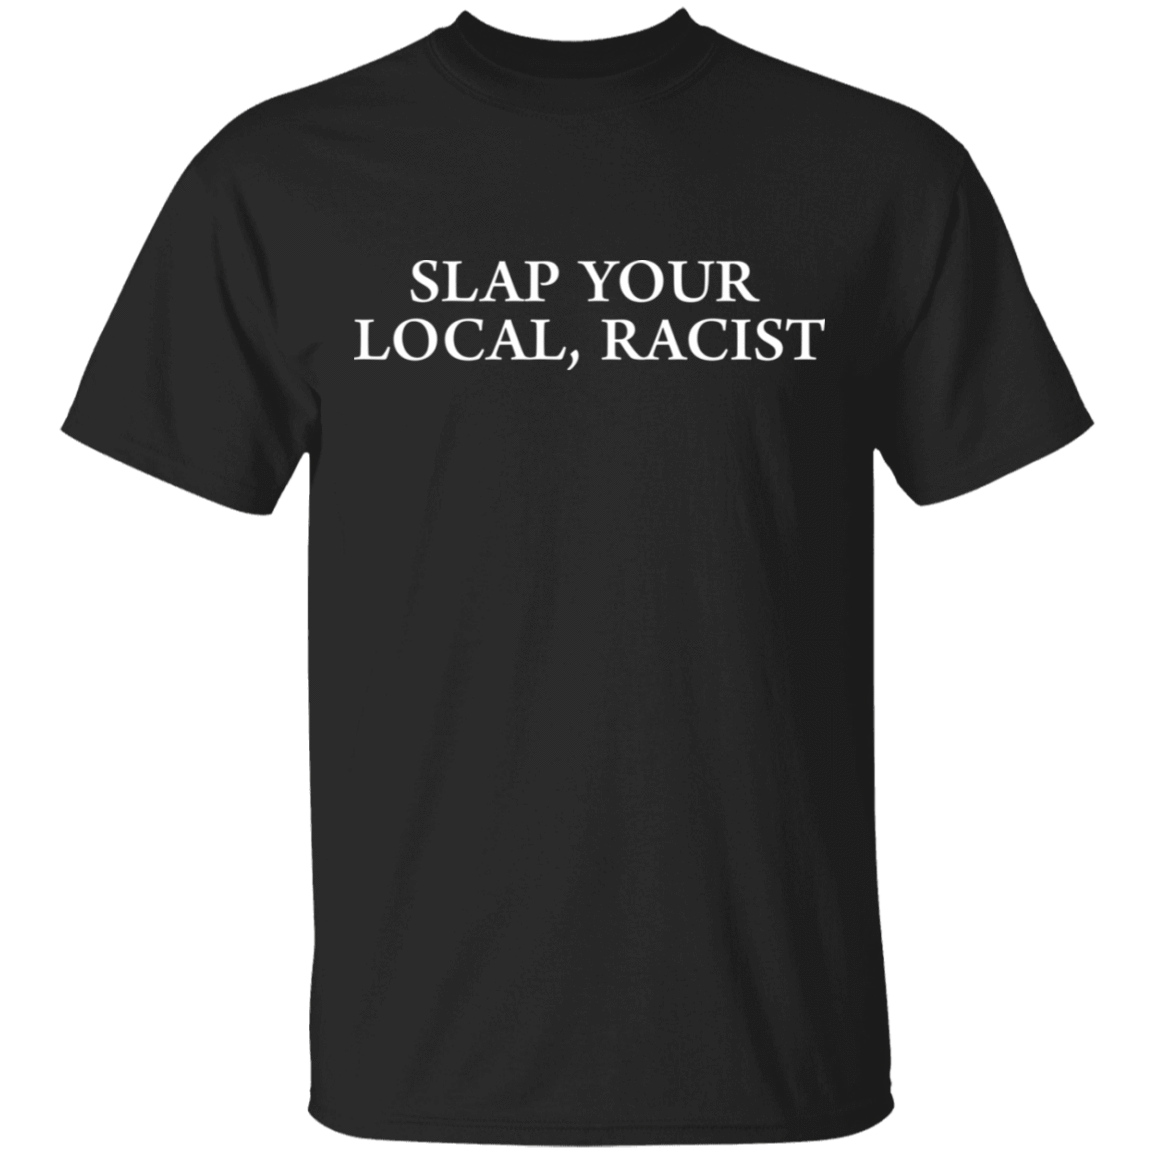 Slap Your Local Racist T-Shirts, Hoodies 22-113-80162947-252 - Tee Ript